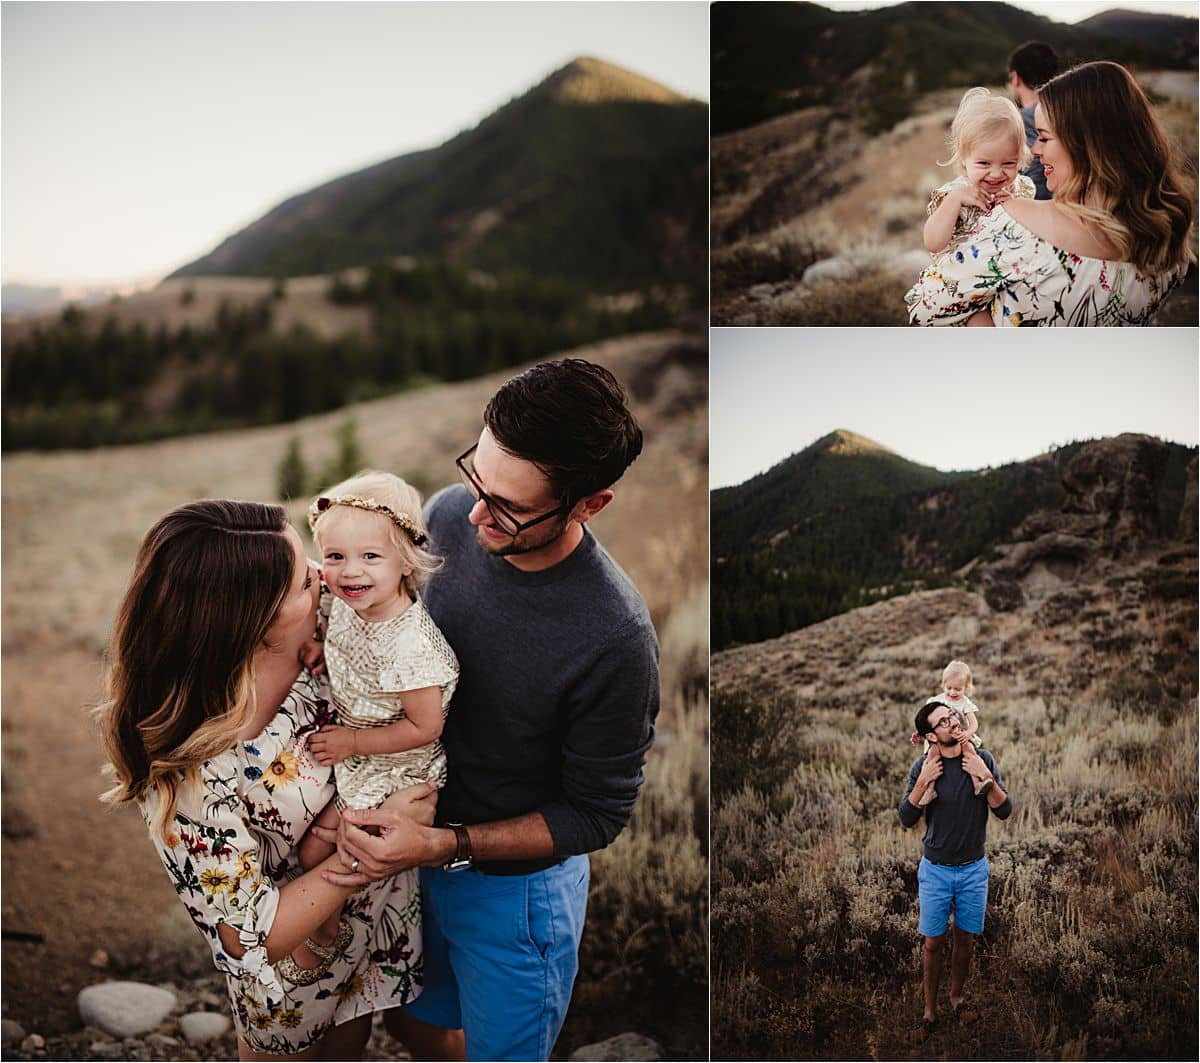 Sunset Valley Family Session Parents with Daughter